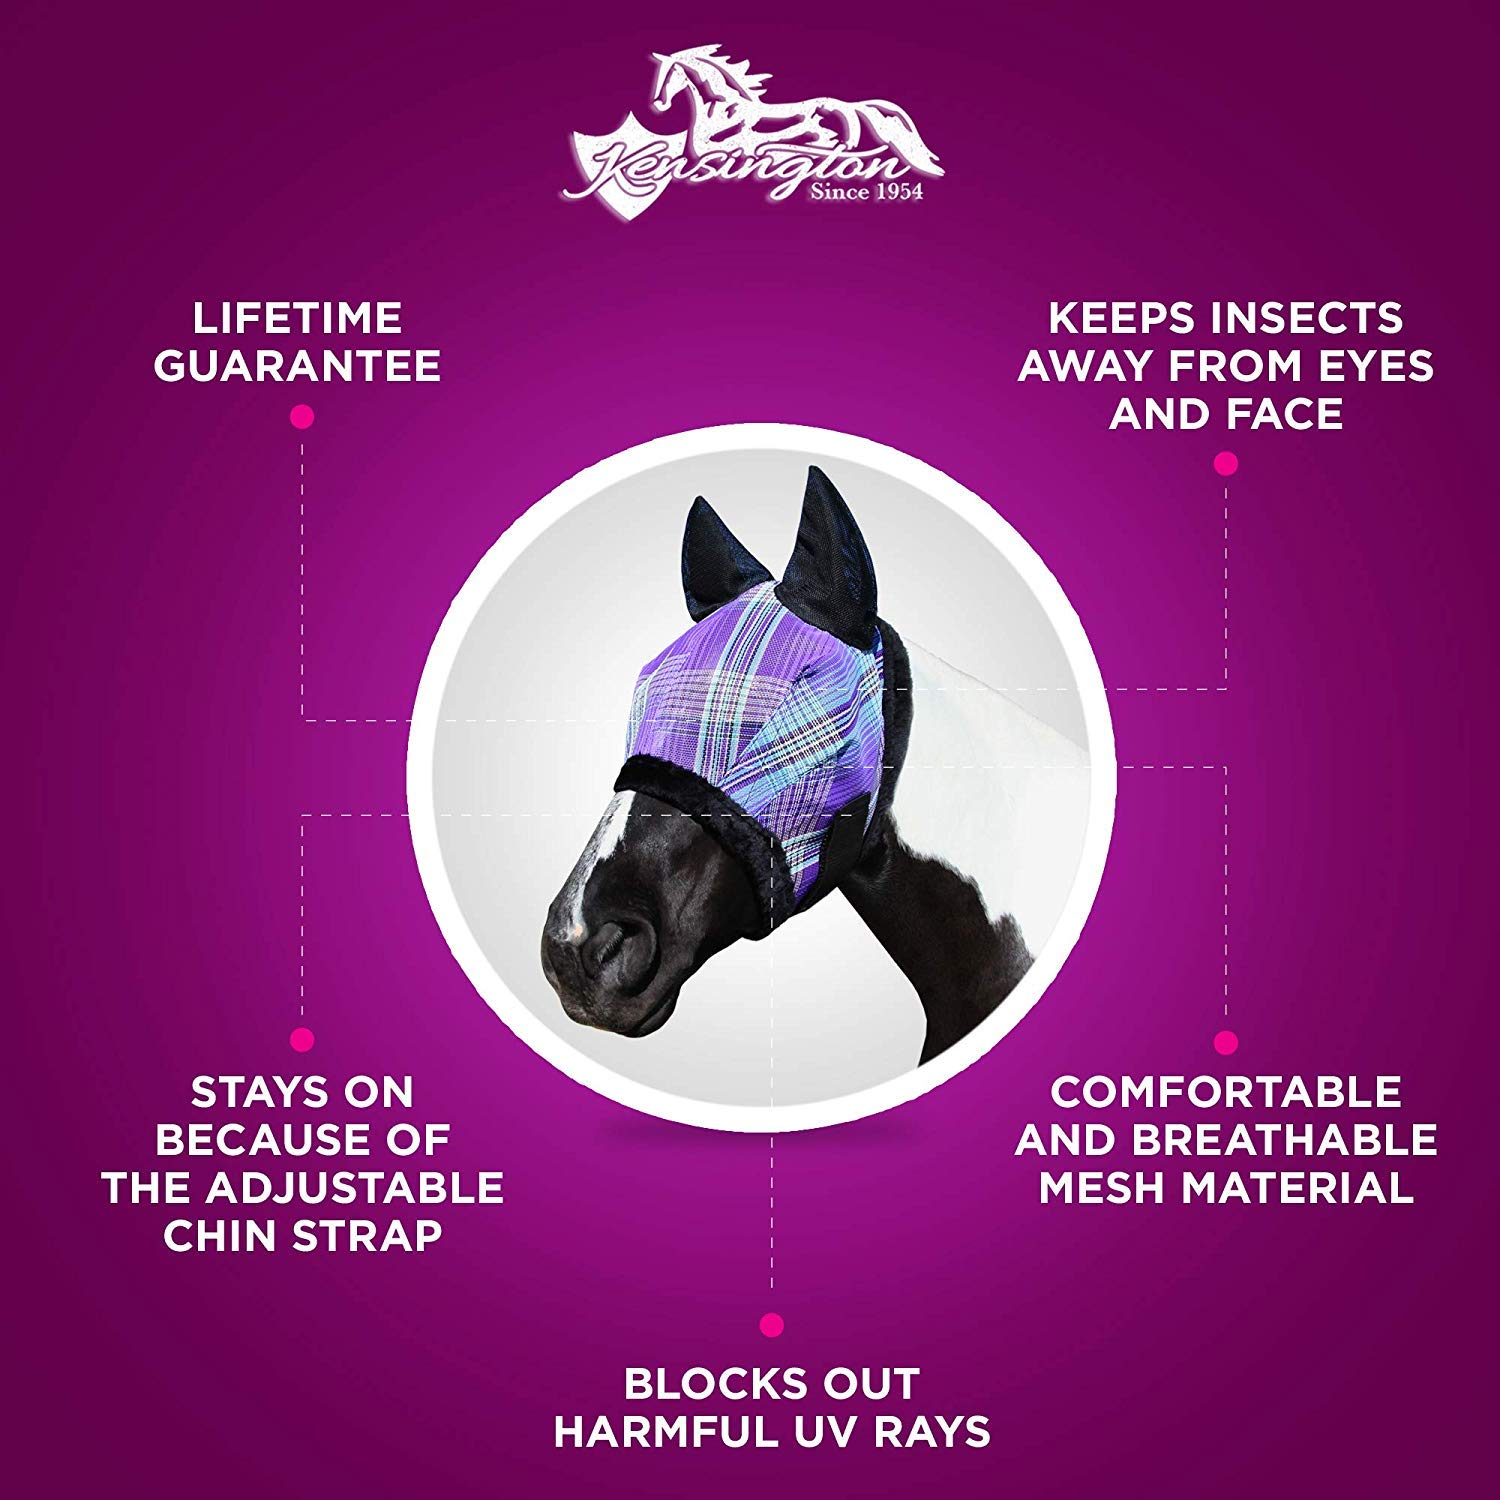 Kensington Fly Mask with Fleece Trim and Soft Ears — Allows Full Visibility with Maximum Protection  — Features Original Double Locking System — UV Protection with Comfortable Fleece Trim by Kensington Protective Products (Image #3)